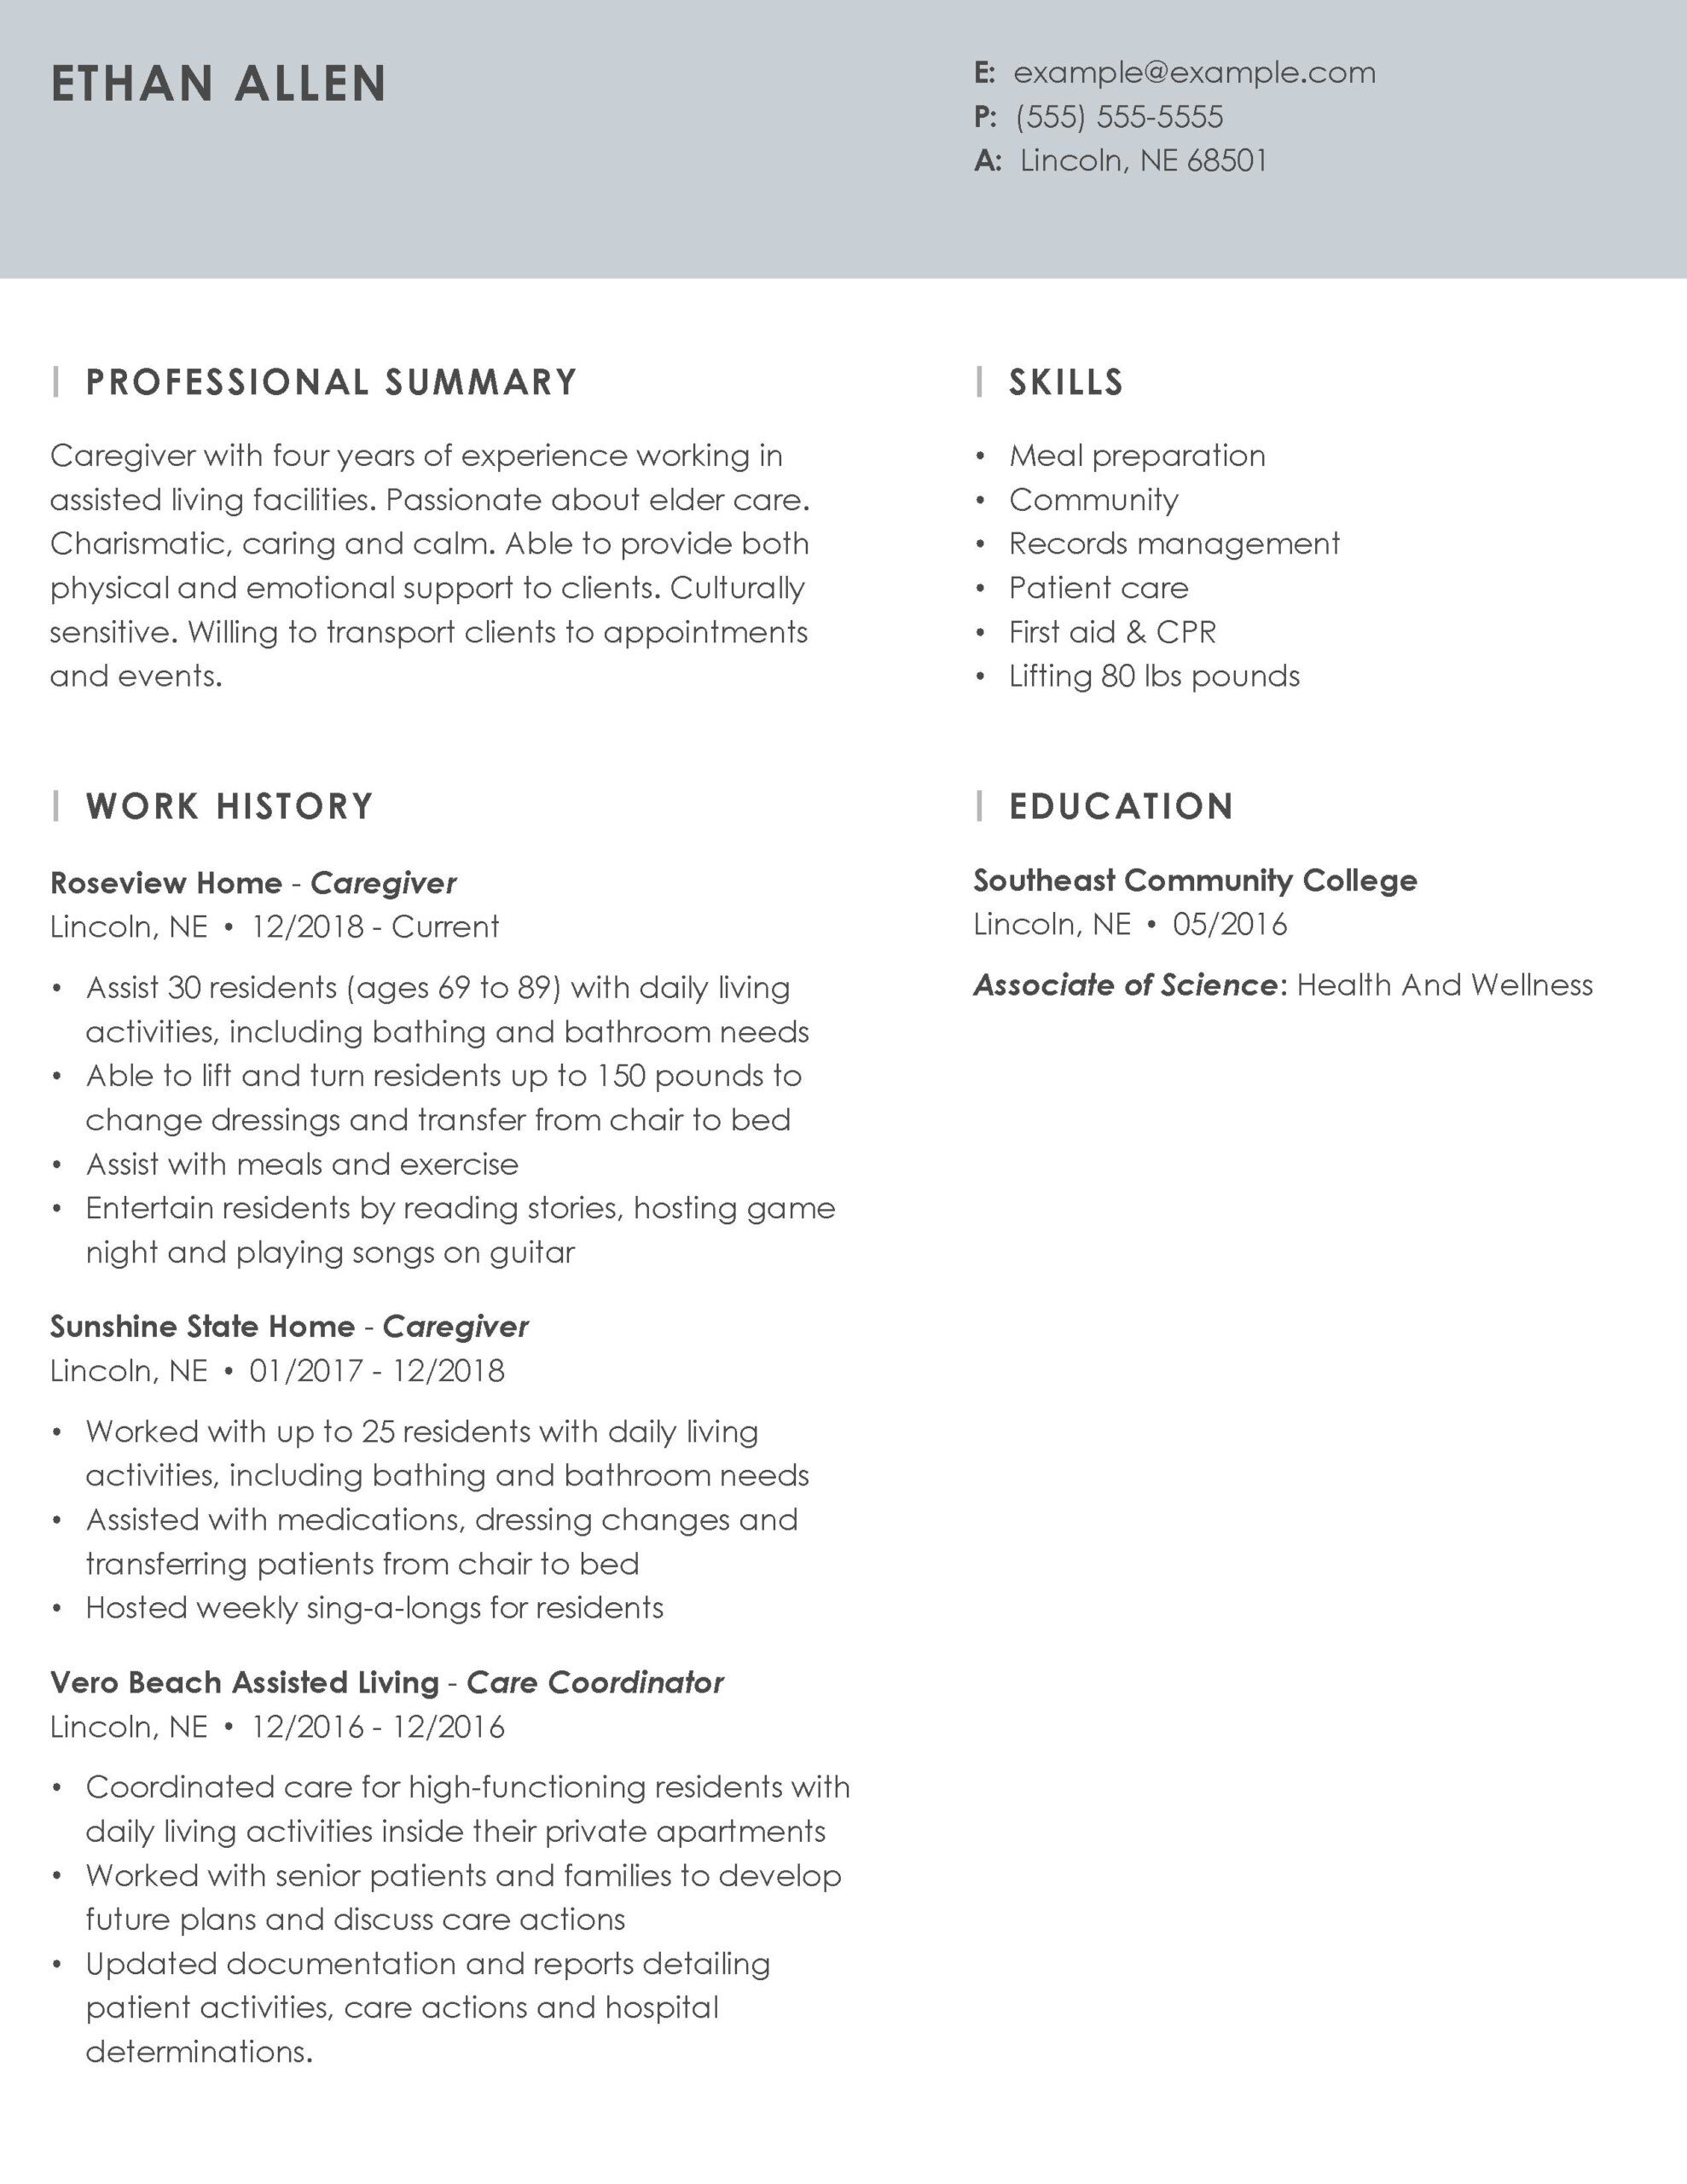 professional caregiver resume example tips myperfectresume caretaker sample essence Resume Caretaker Resume Sample